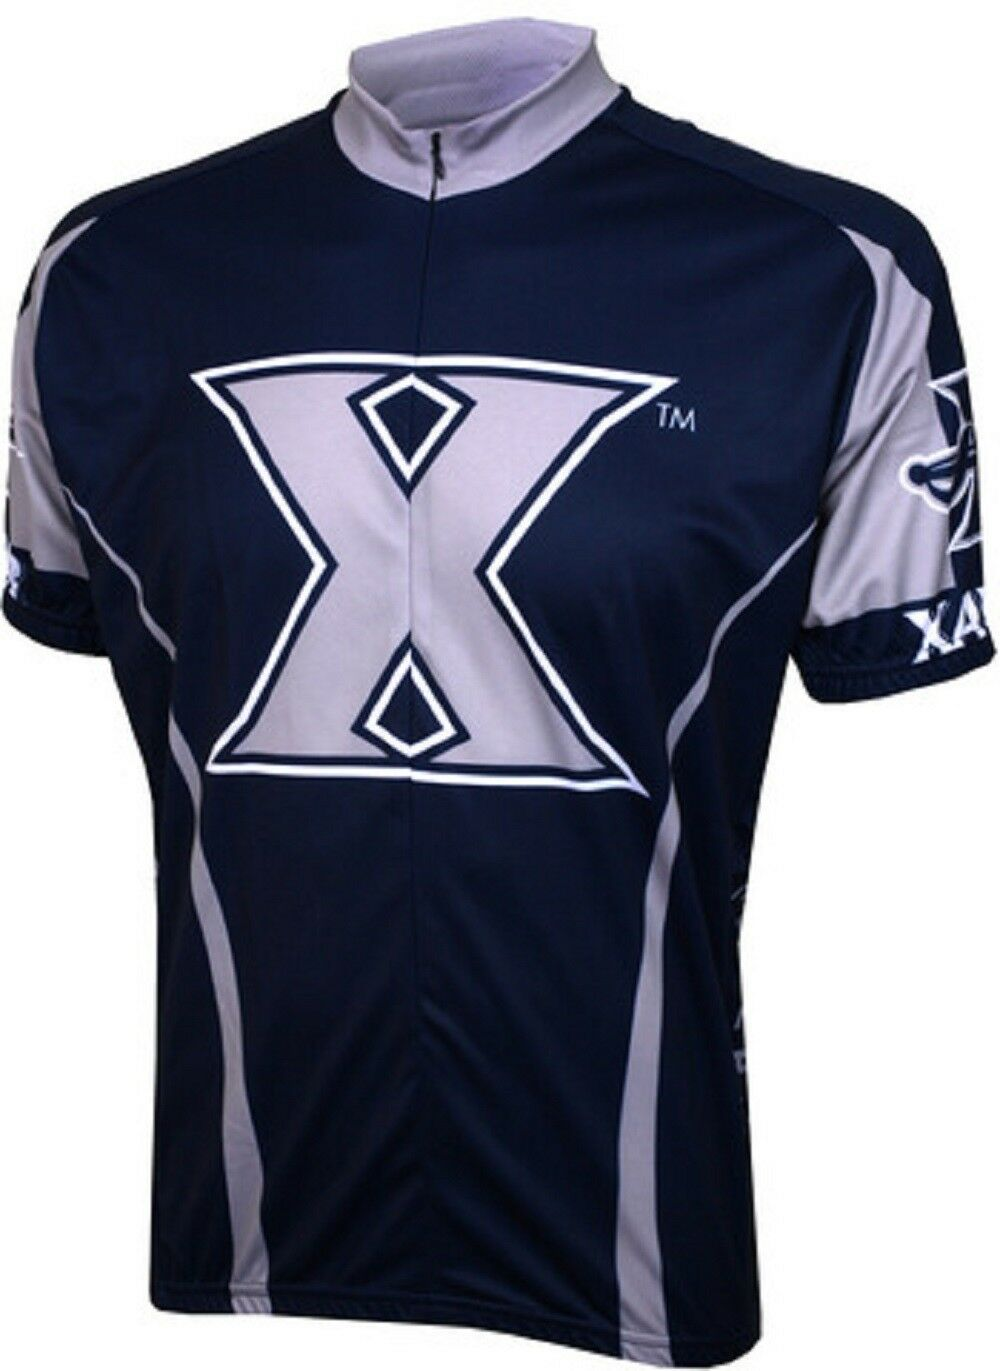 NCAA Men's Adrenaline Promotions  Xavier Musketeers Cycling Jersey  fashion mall